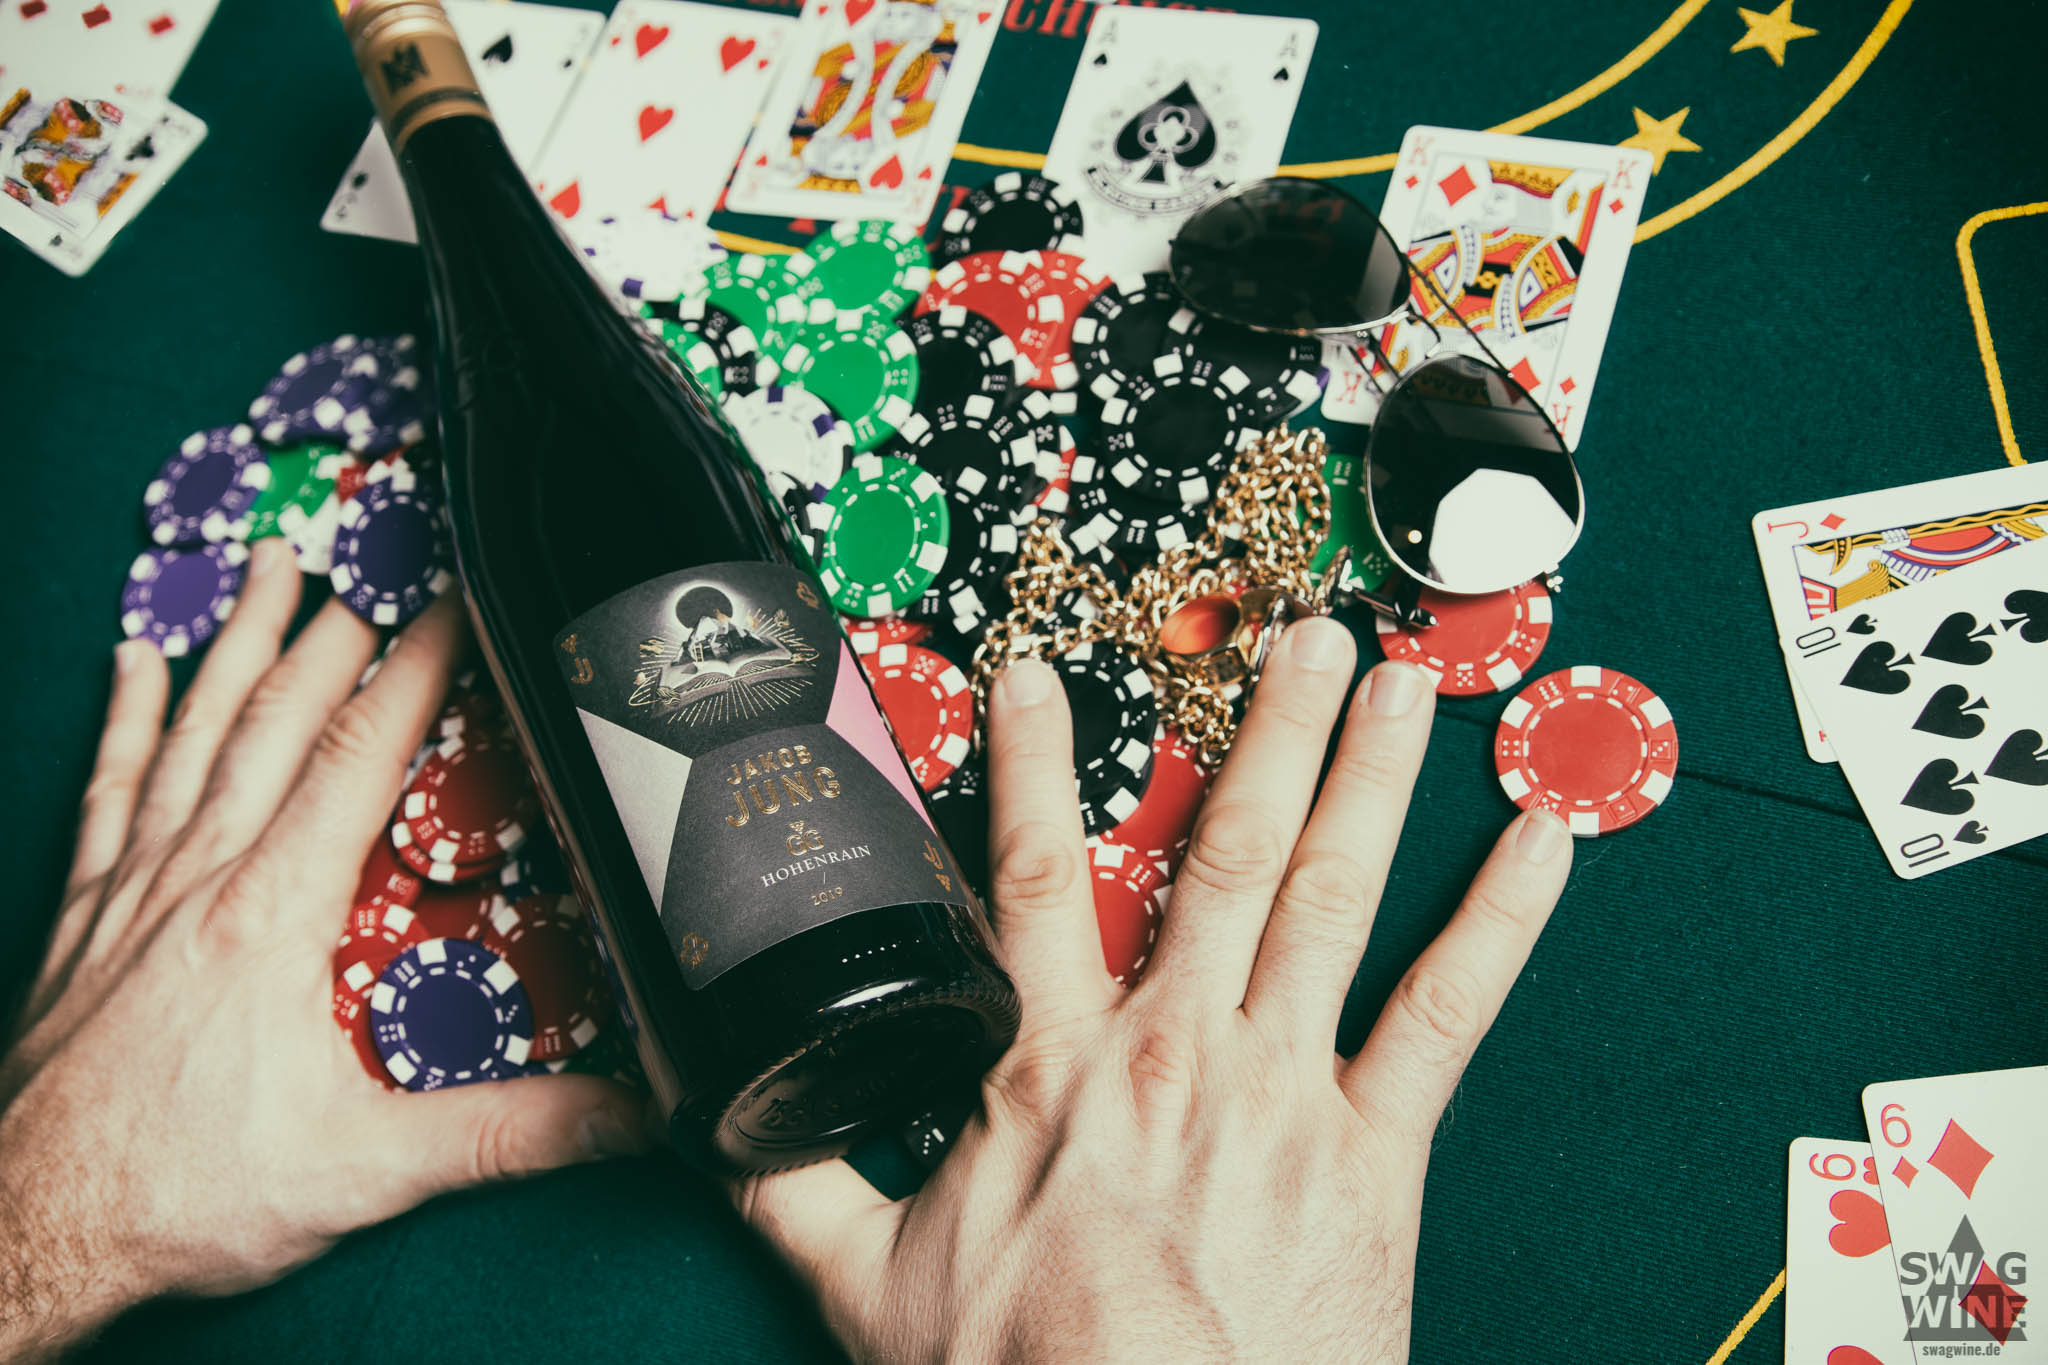 Jakob Jung Riesling GG Hohenrain All in Poker